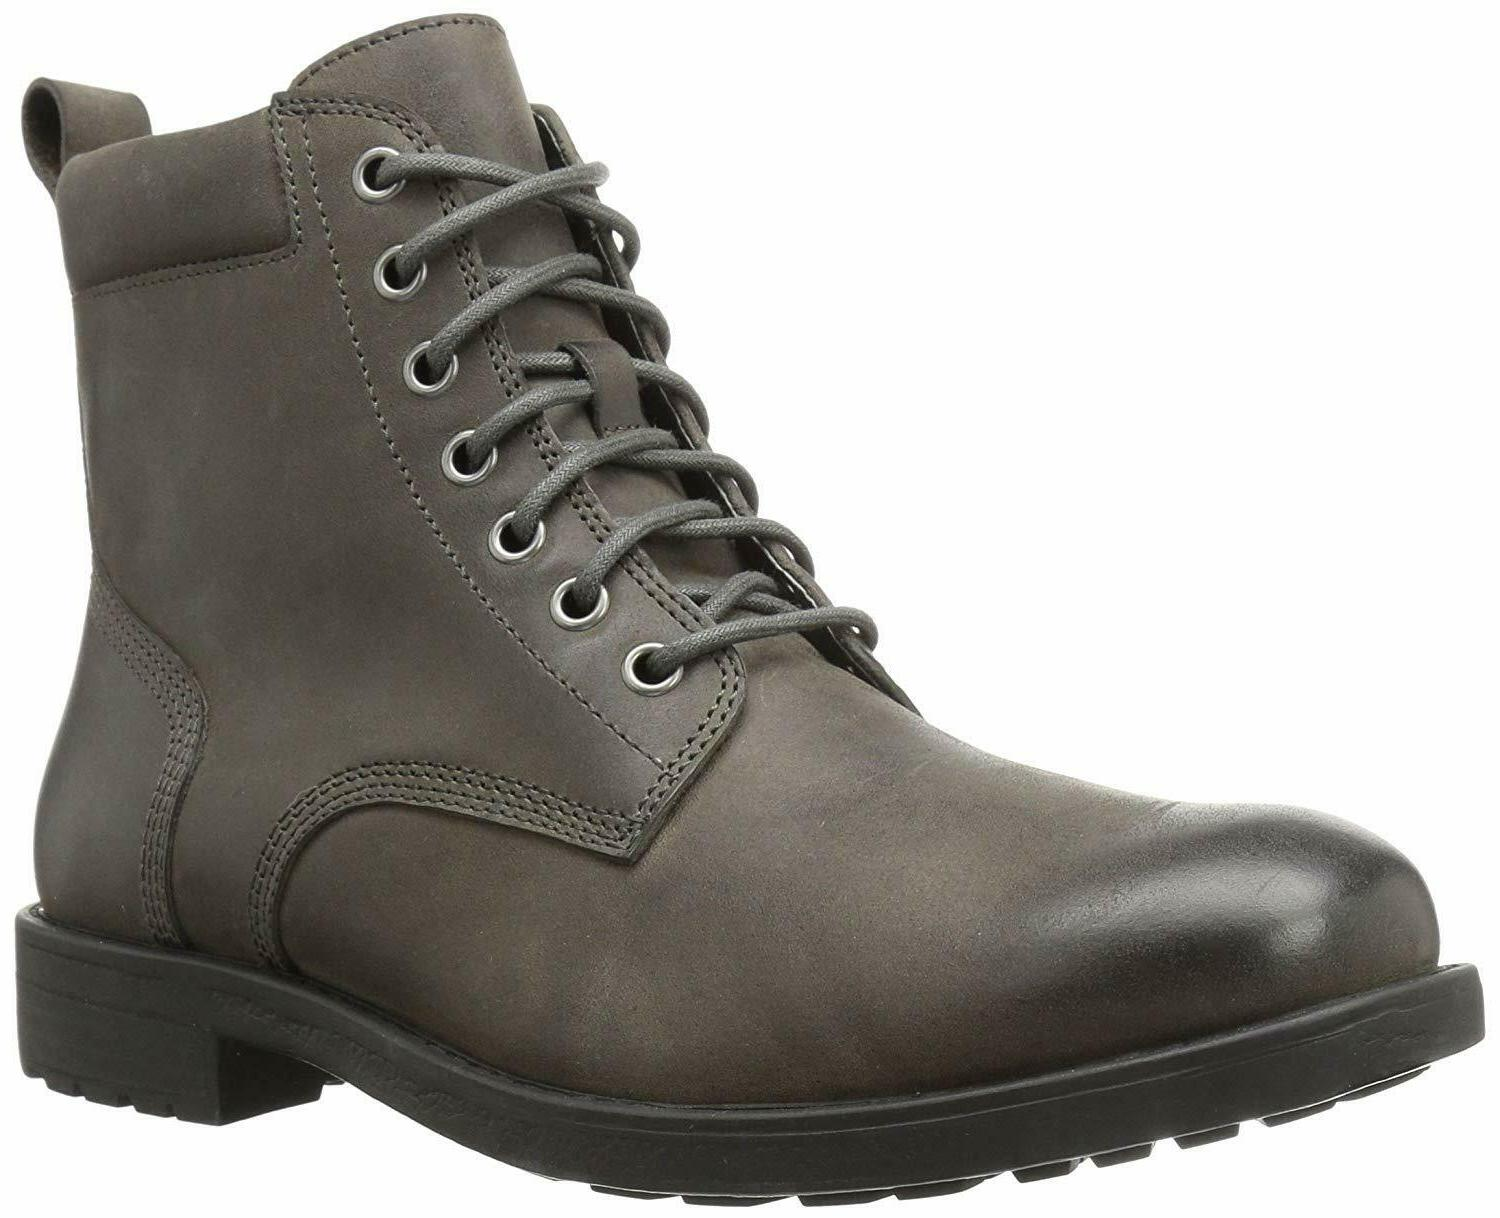 206 Collective Men's Lace-up Boot,